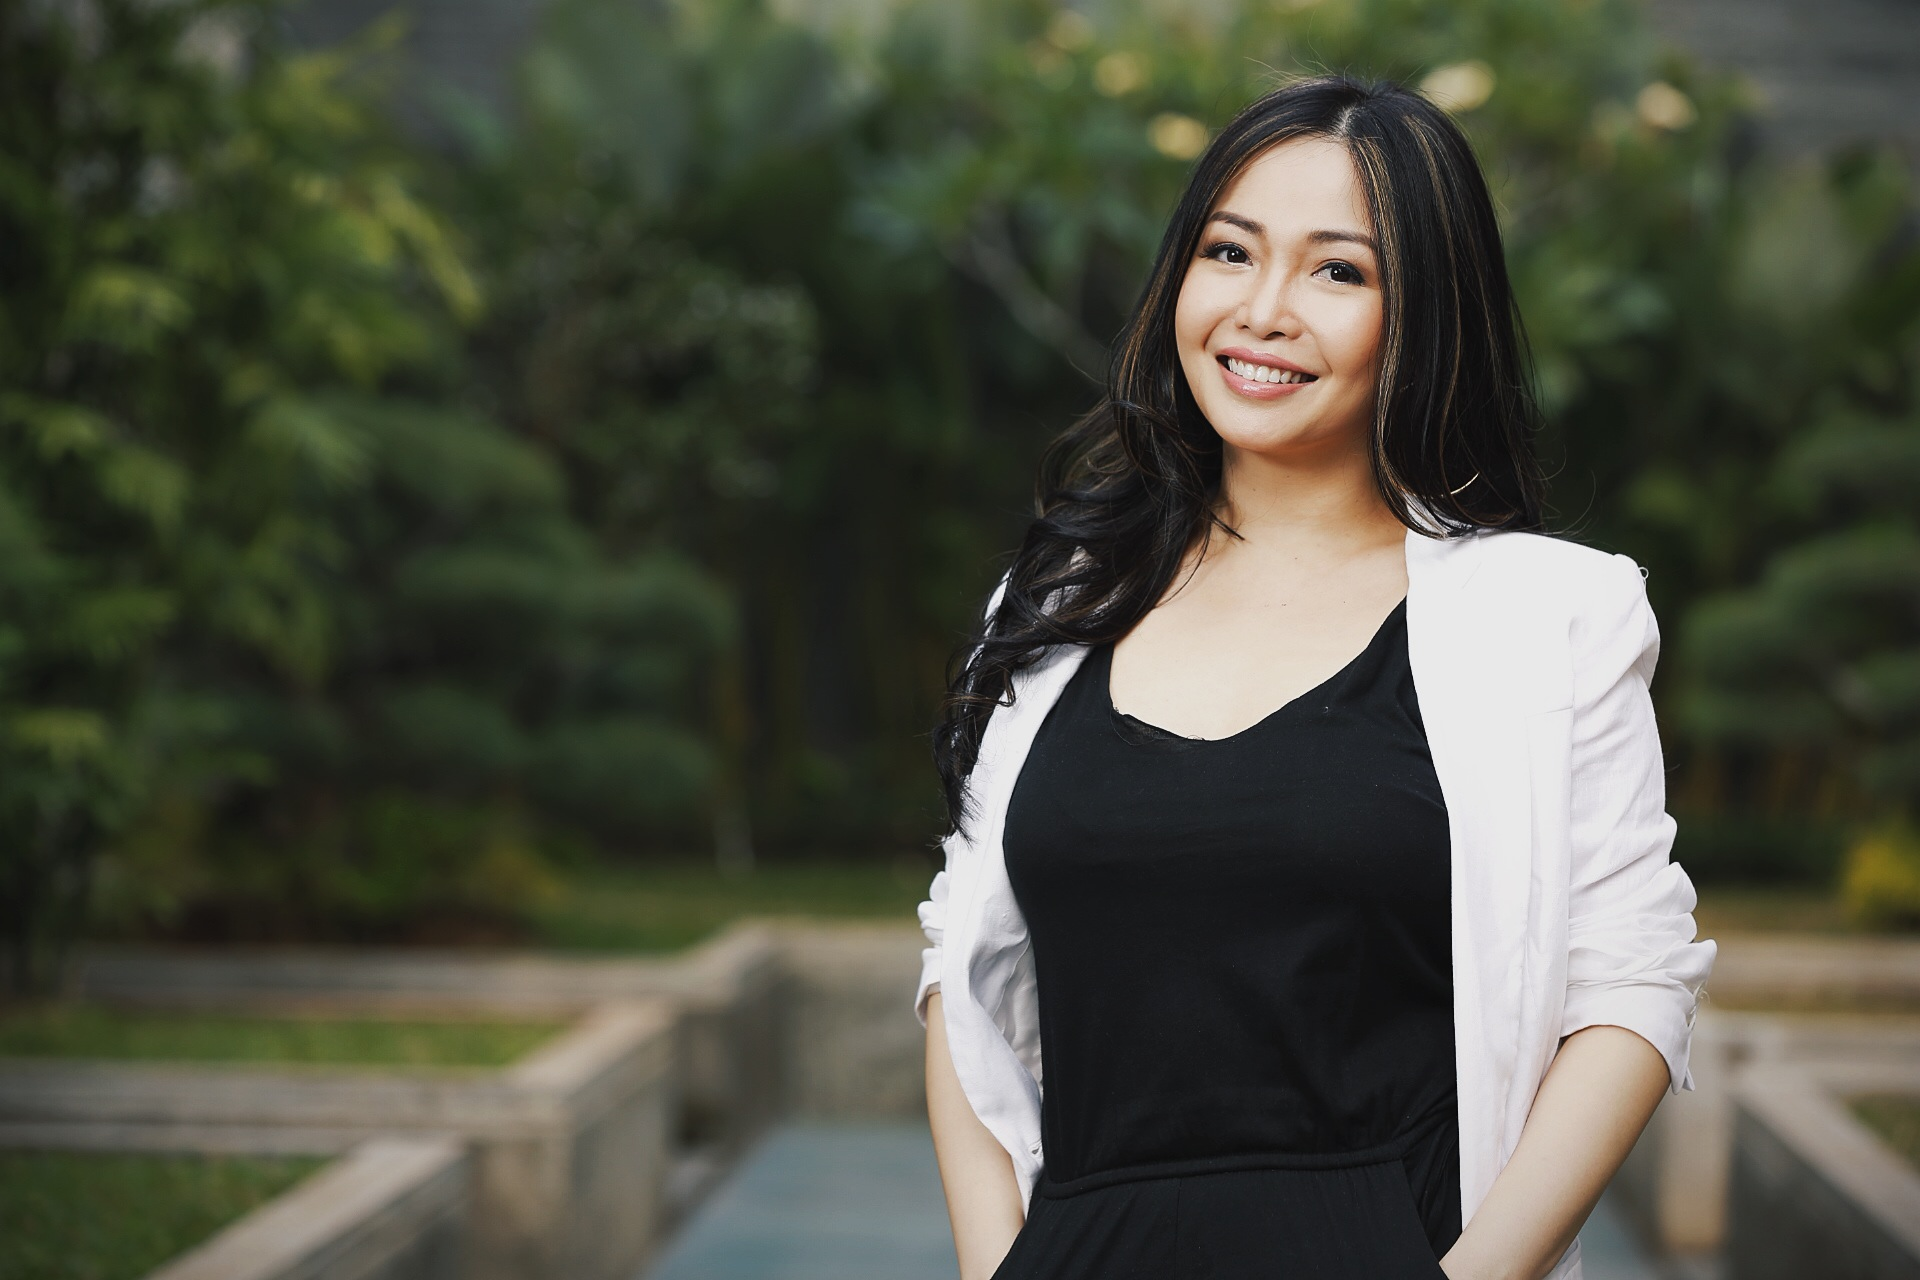 Indonesian Celebrity Great interview] a quick chat with chef marinka from masterchef